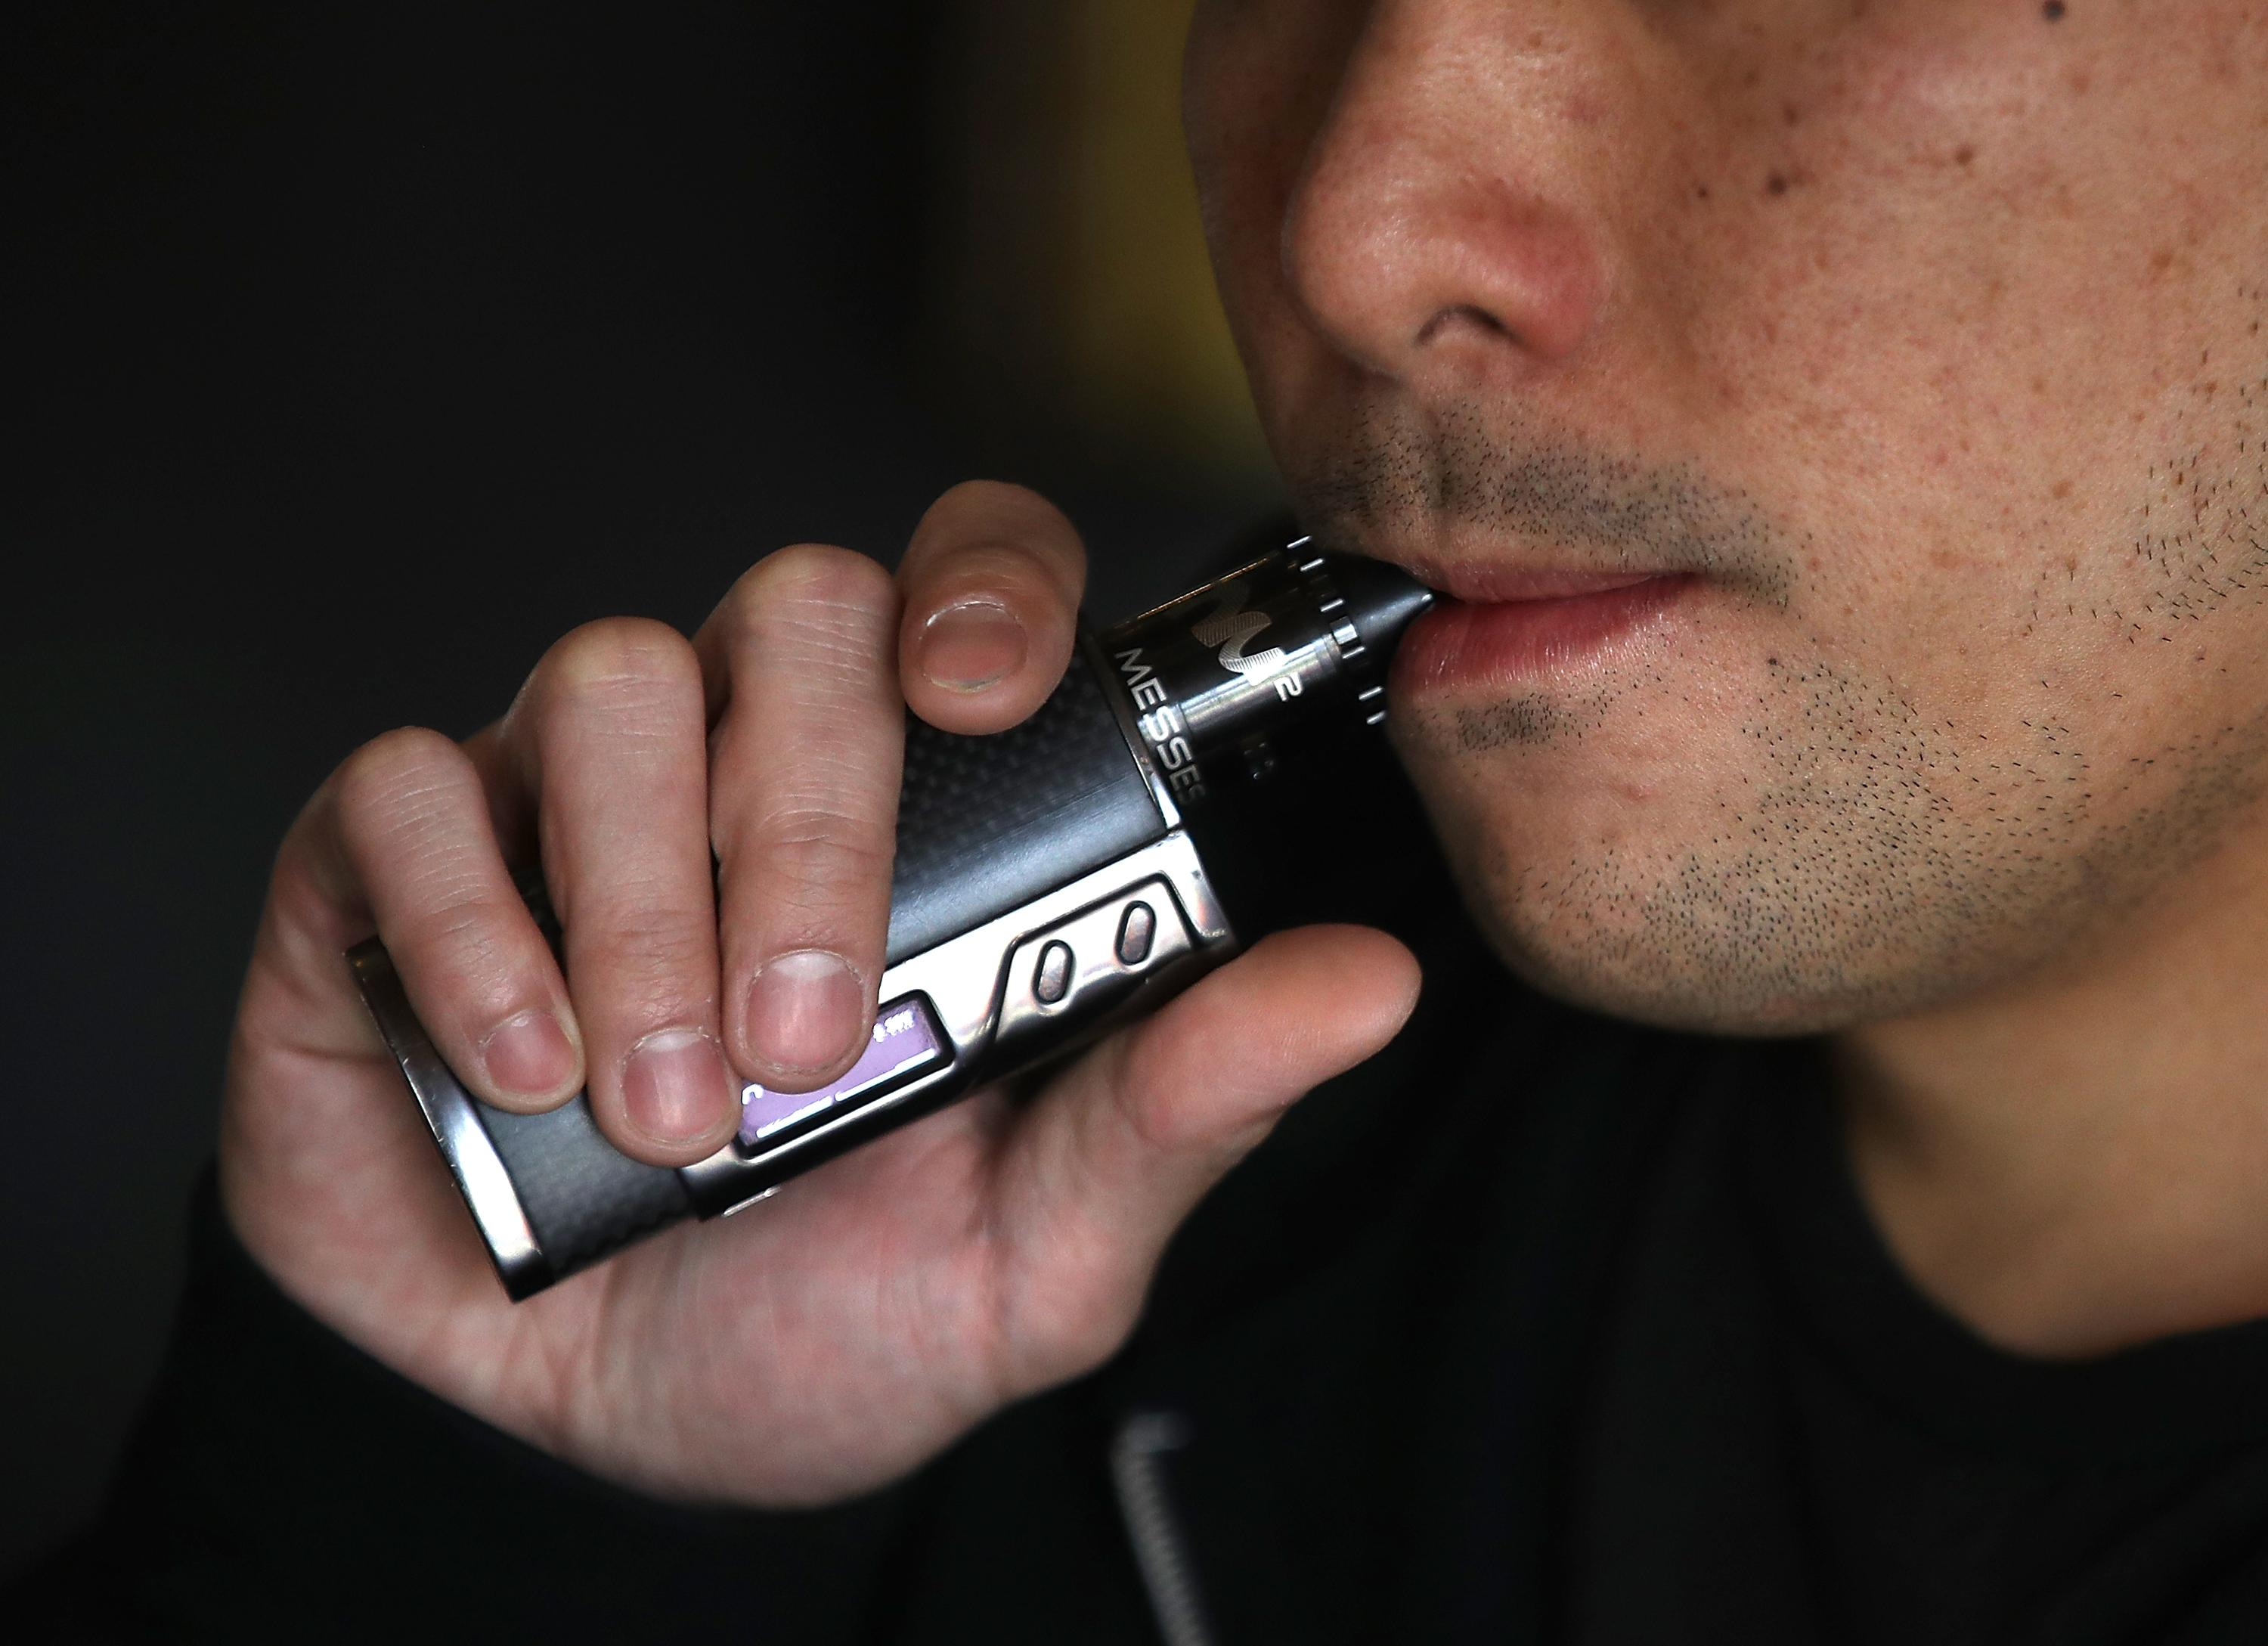 Vape pen explosion fatally wounded St. Petersburg man